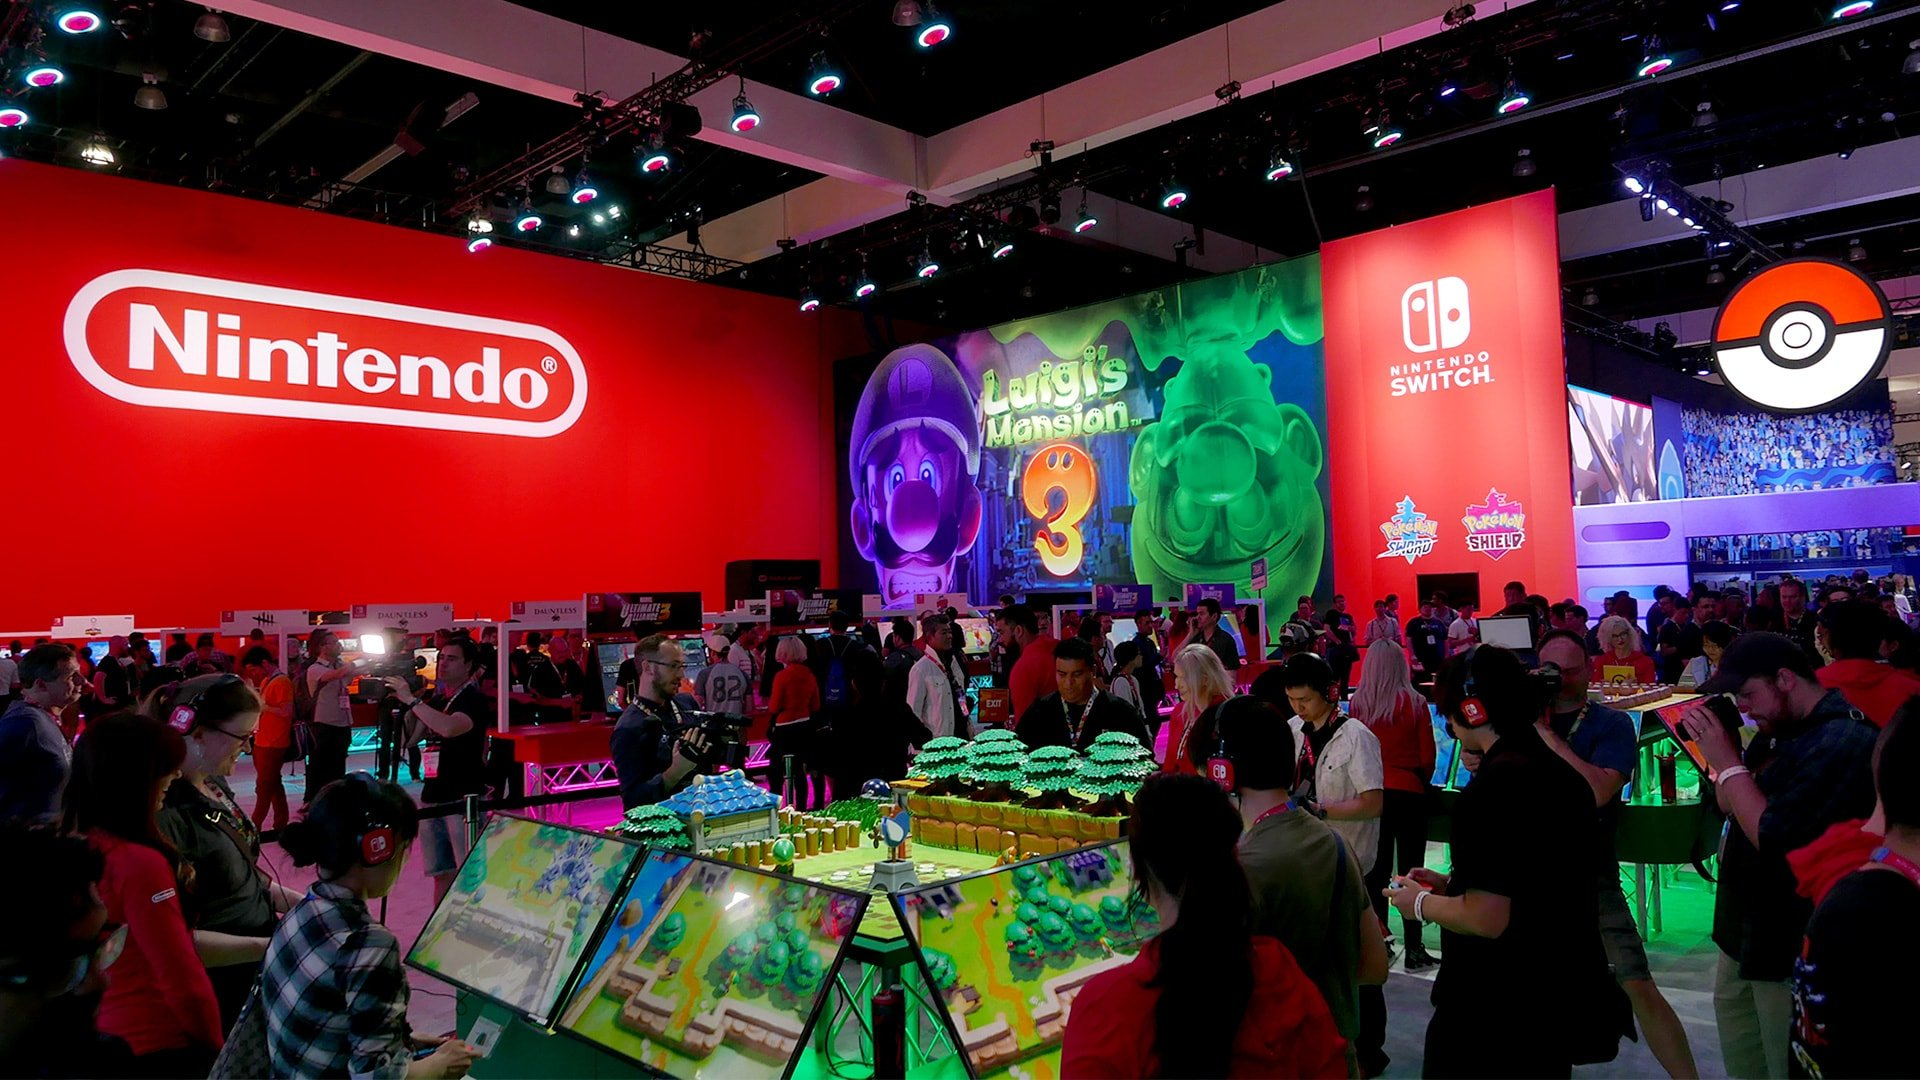 There's little doubt that Nintendo has winning strategies when it comes to US and EU gamers, but are they willing to share that strategy with Tencent?